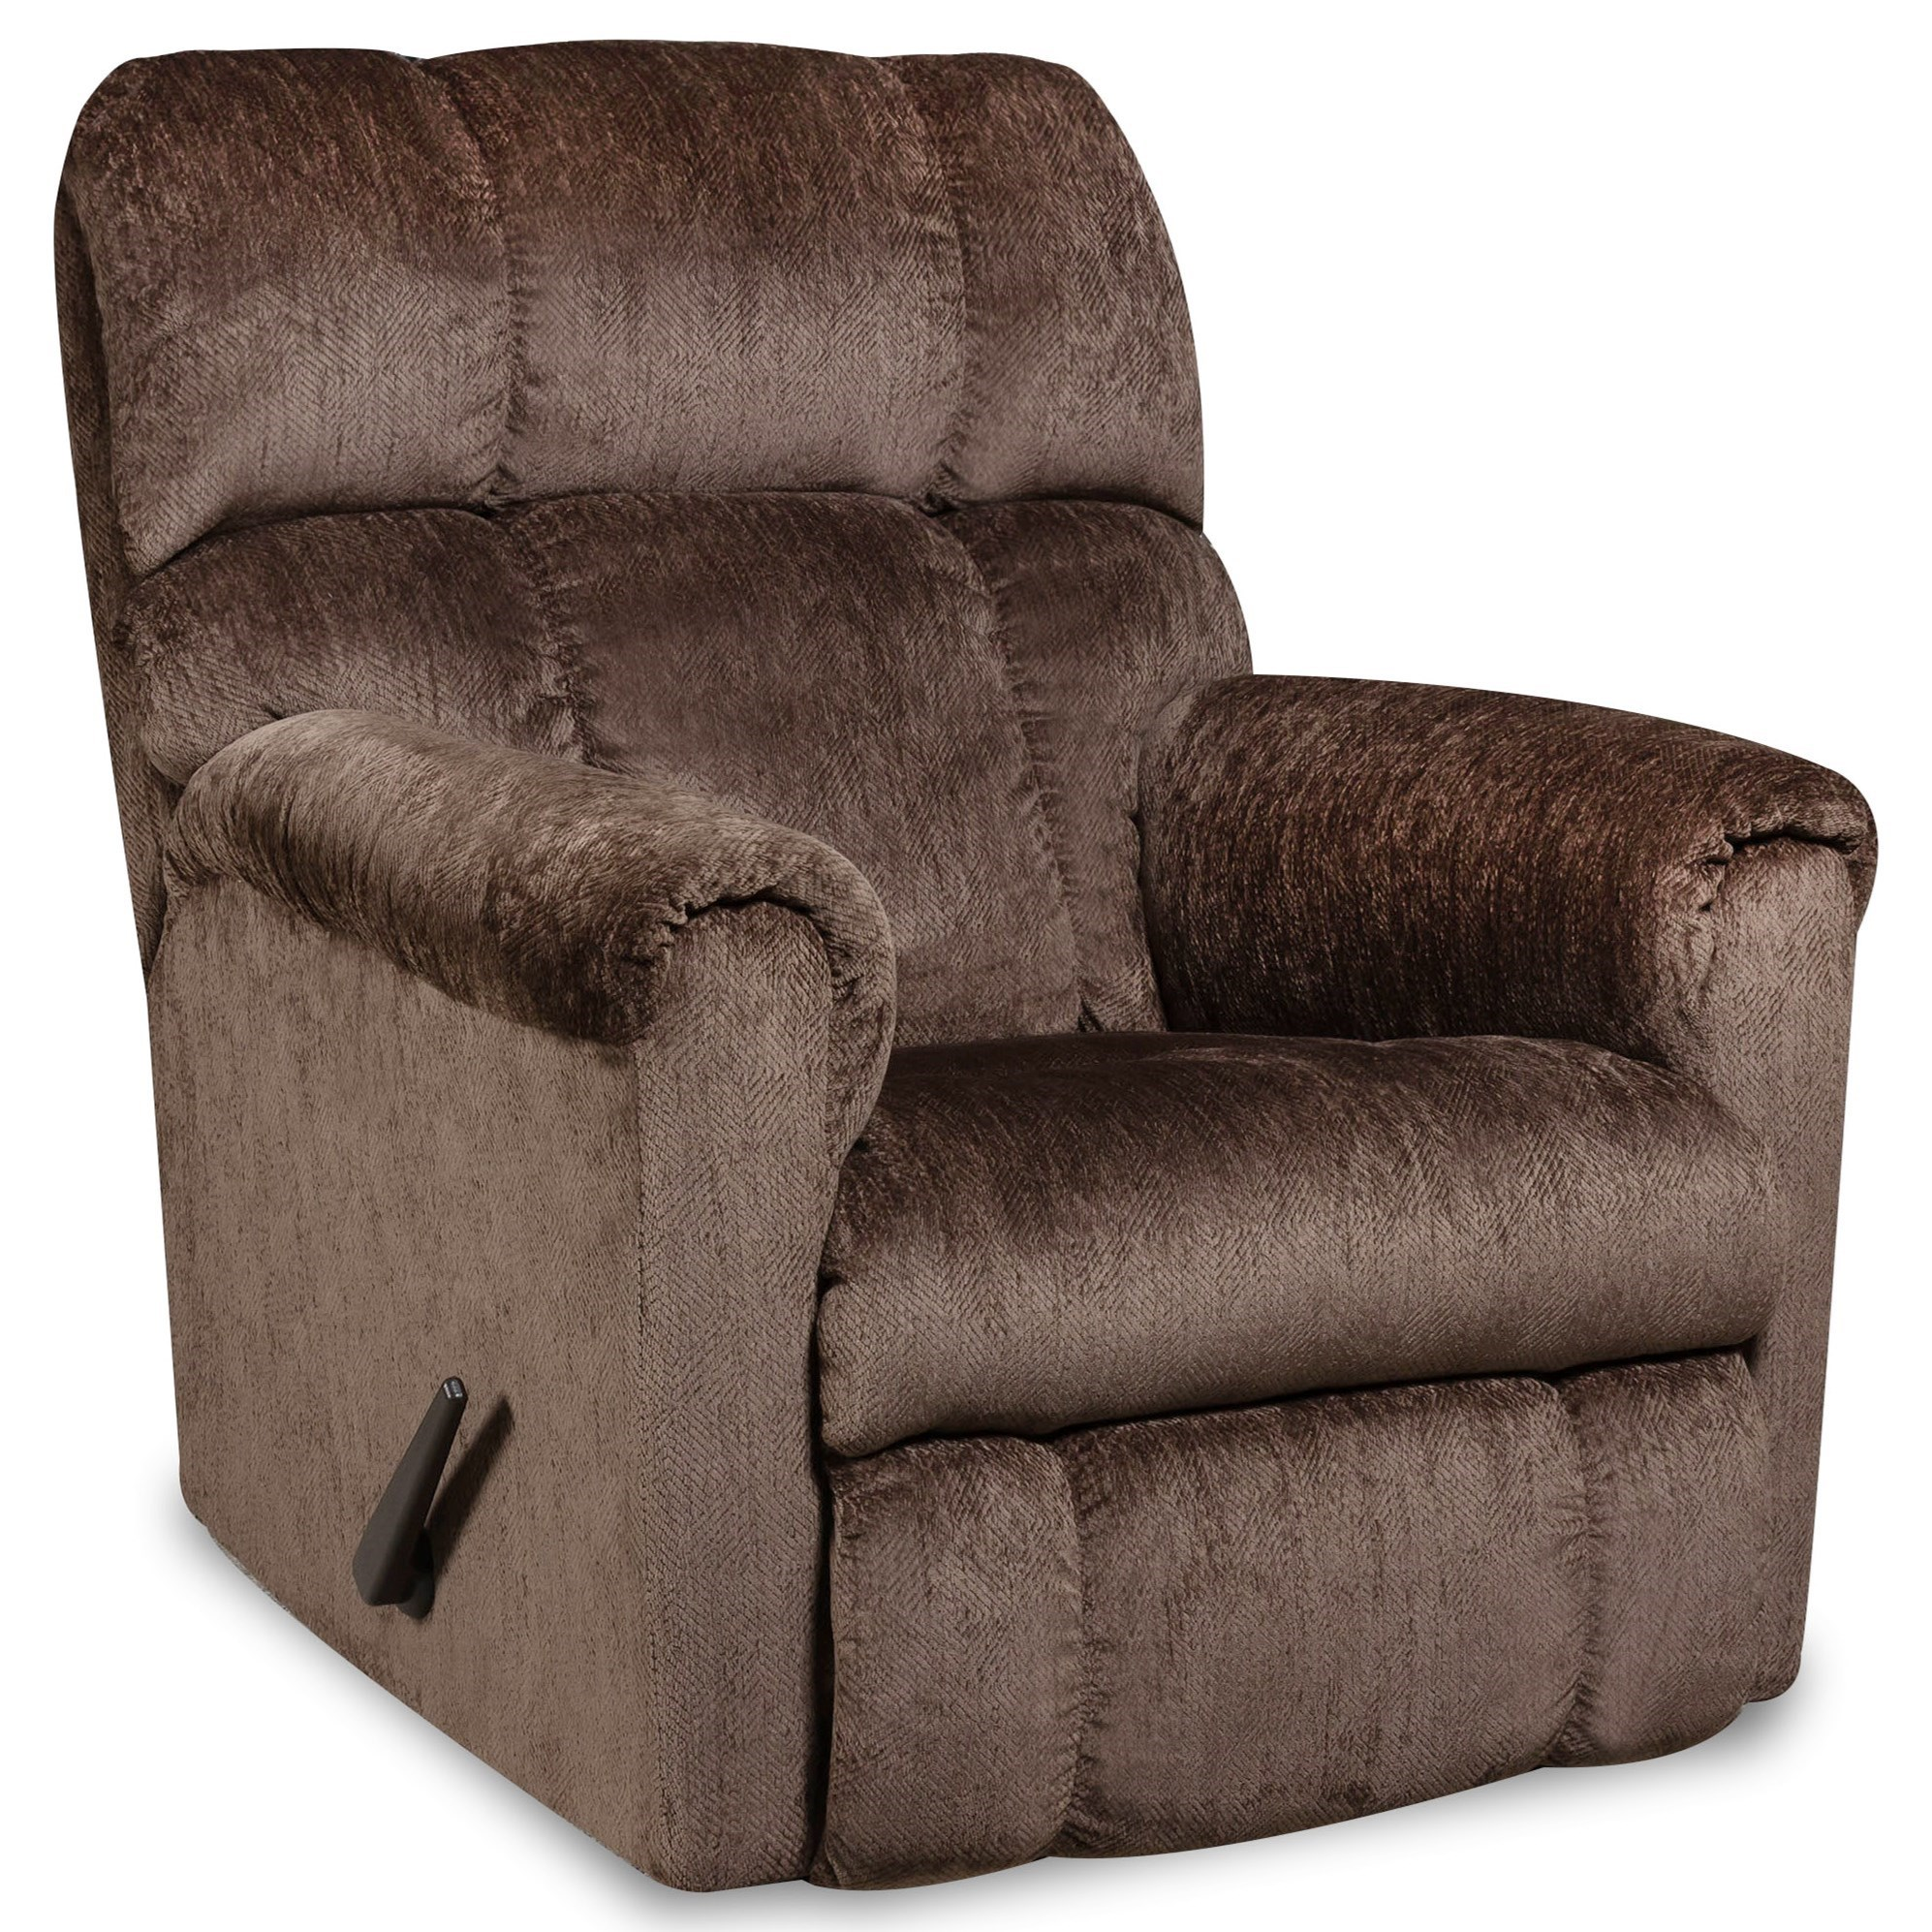 134 Chaise Recliner by HomeStretch at Westrich Furniture & Appliances